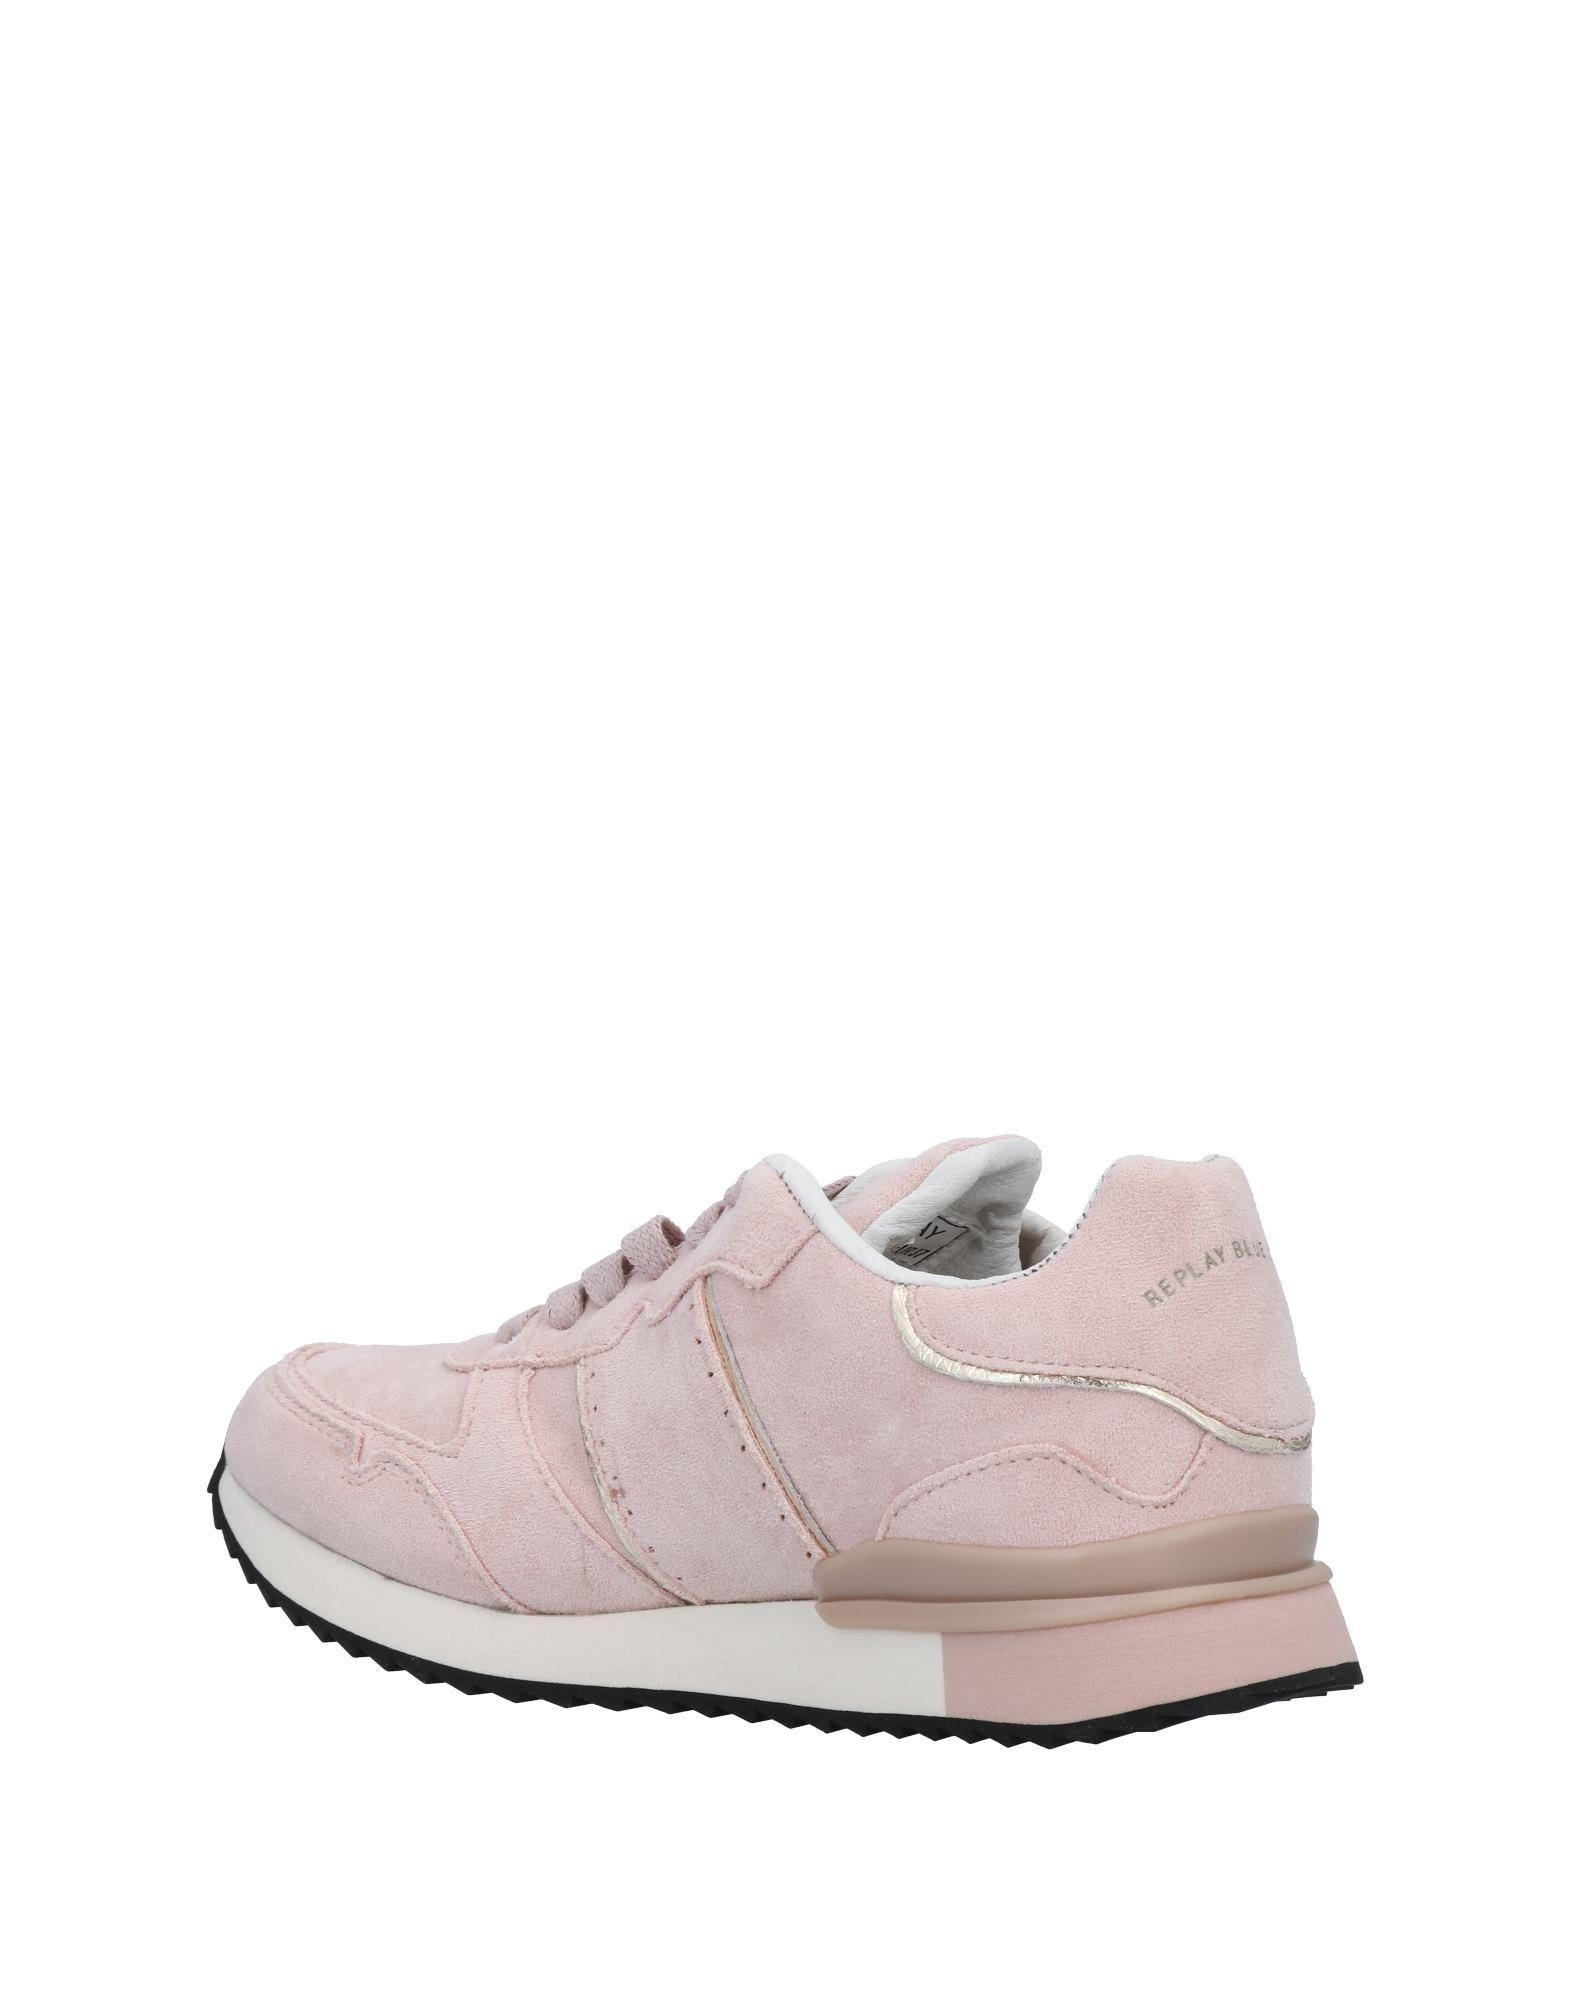 Replay Synthetic Low-tops & Sneakers in Pink